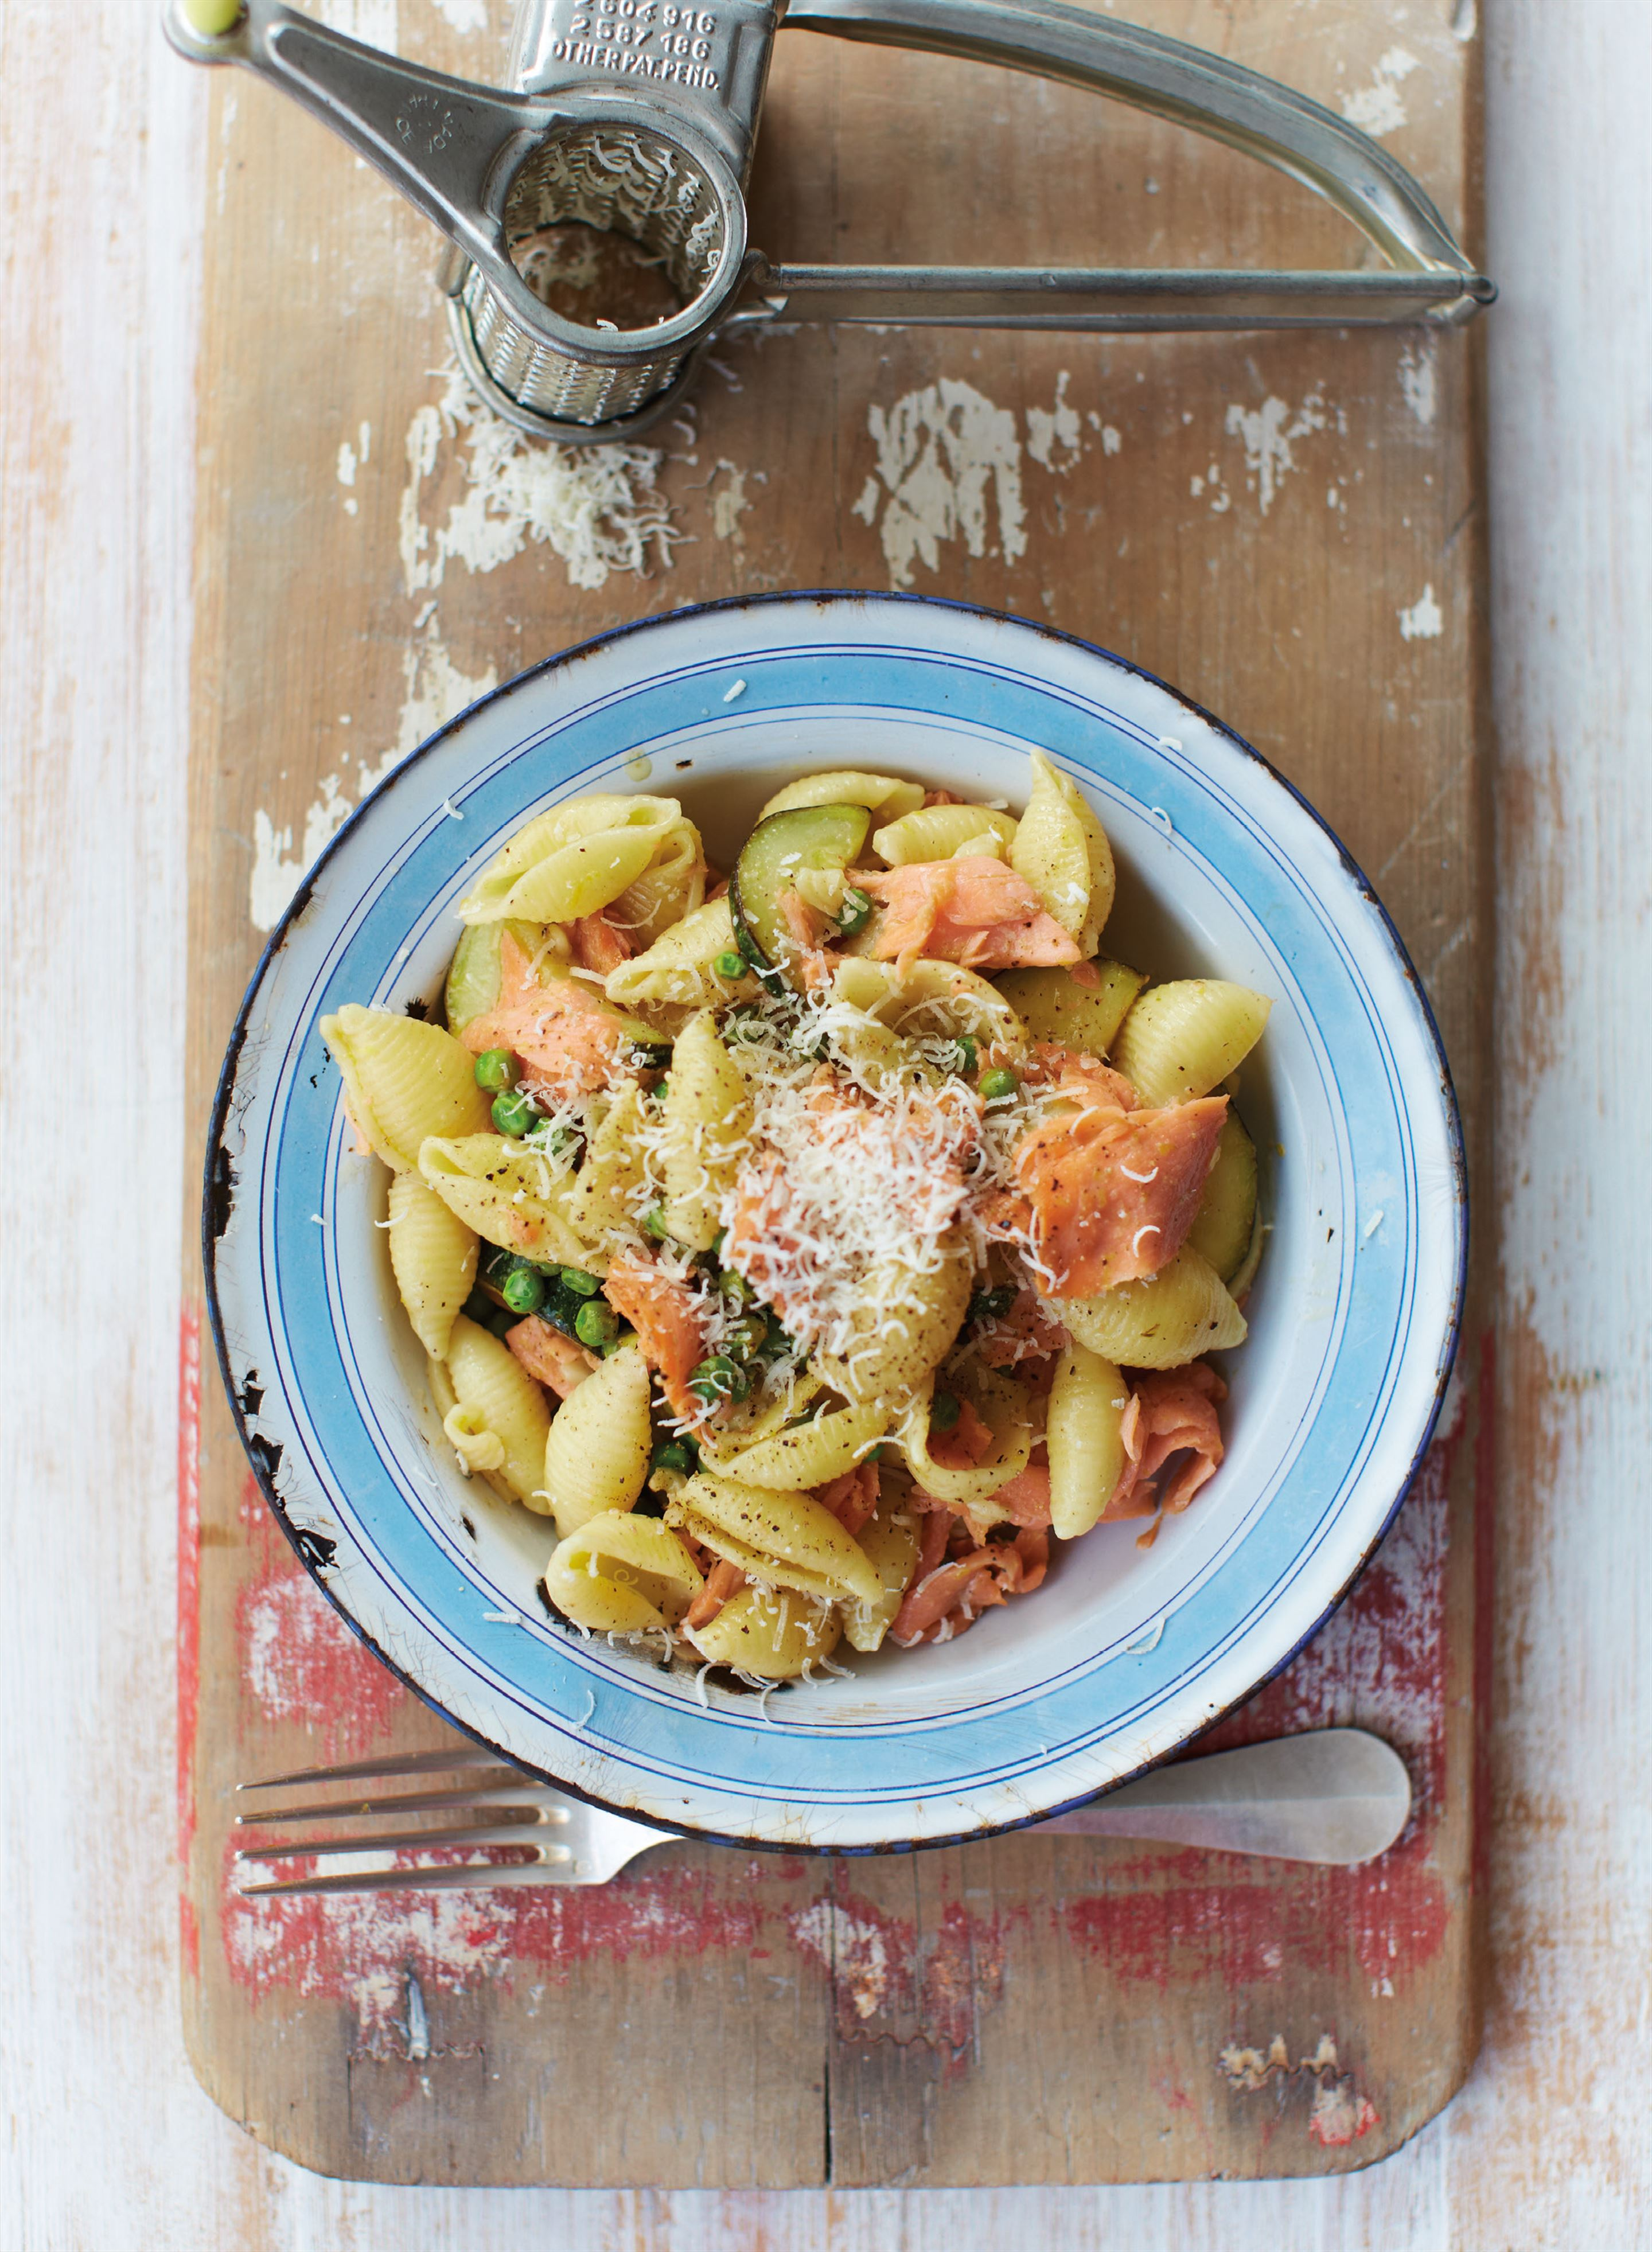 Lemony salmon pasta with courgettes and peas